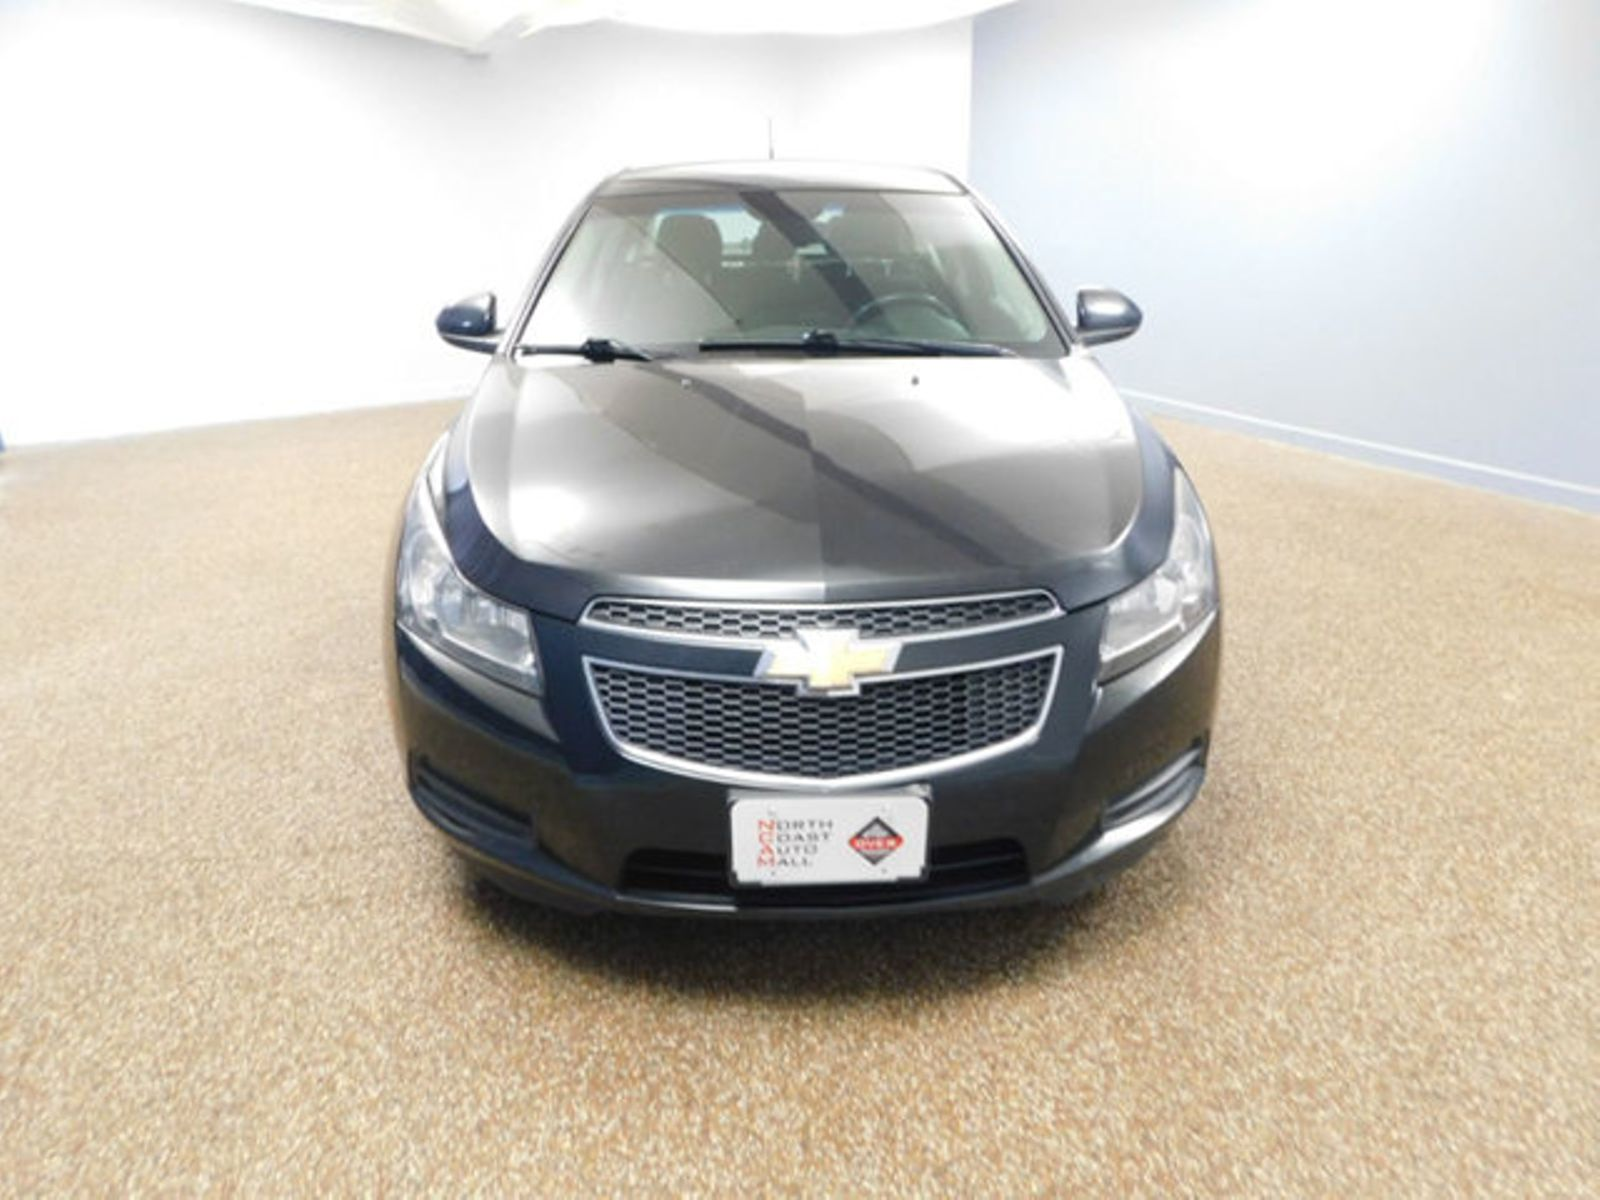 Chevrolet Cruze Owners Manual: Adding Equipment to the Airbag-Equipped Vehicle